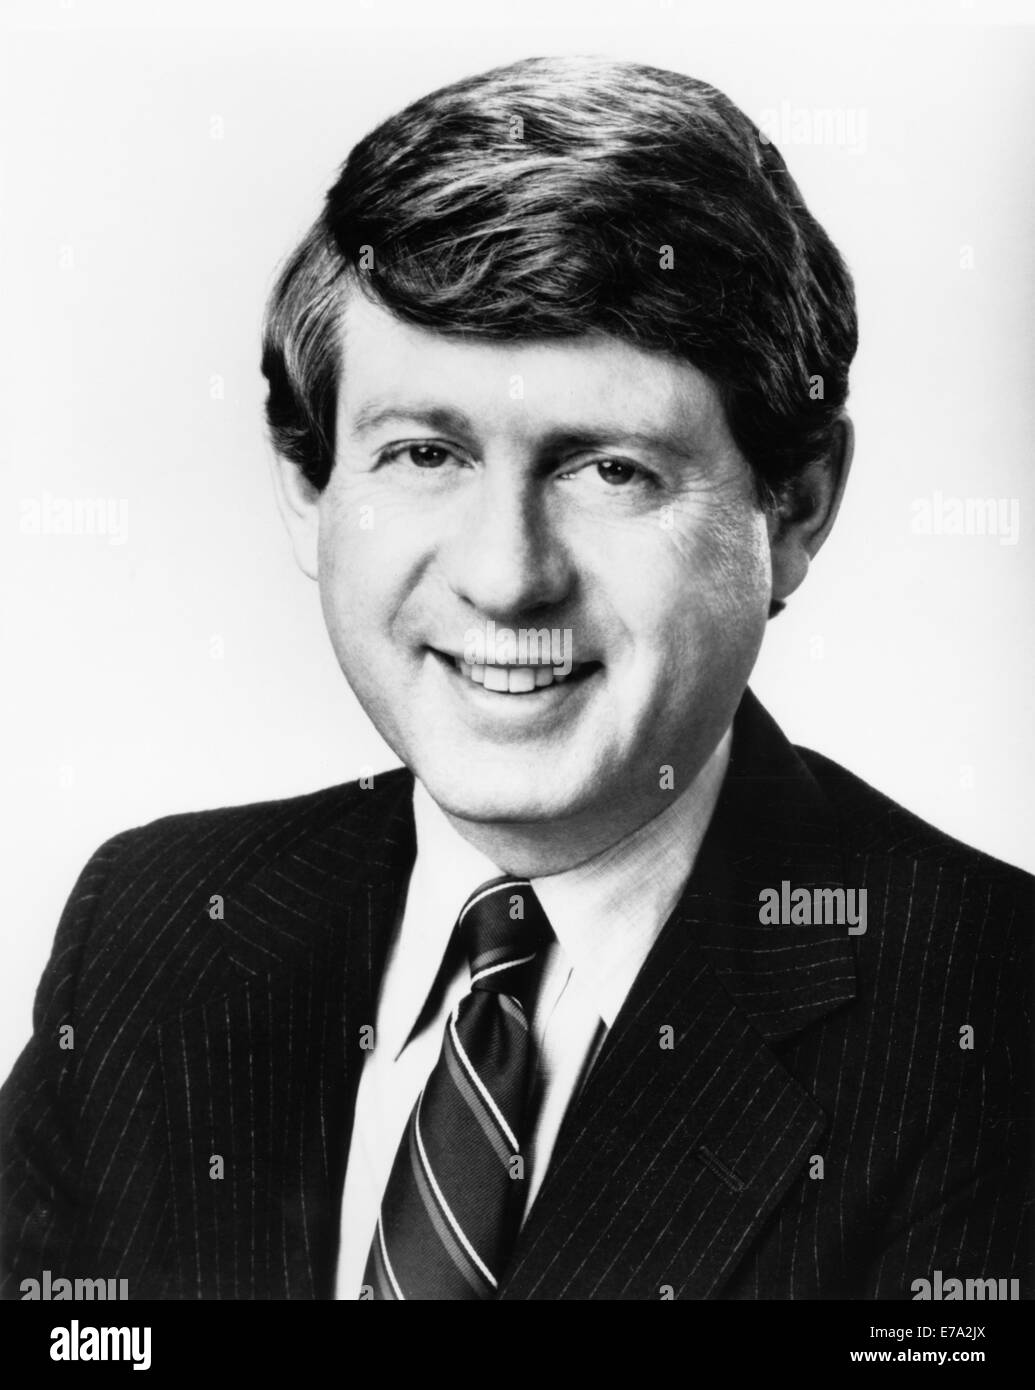 Ted Koppel, British-American Broadcast Journalist, Portrait, circa 1980's - Stock Image